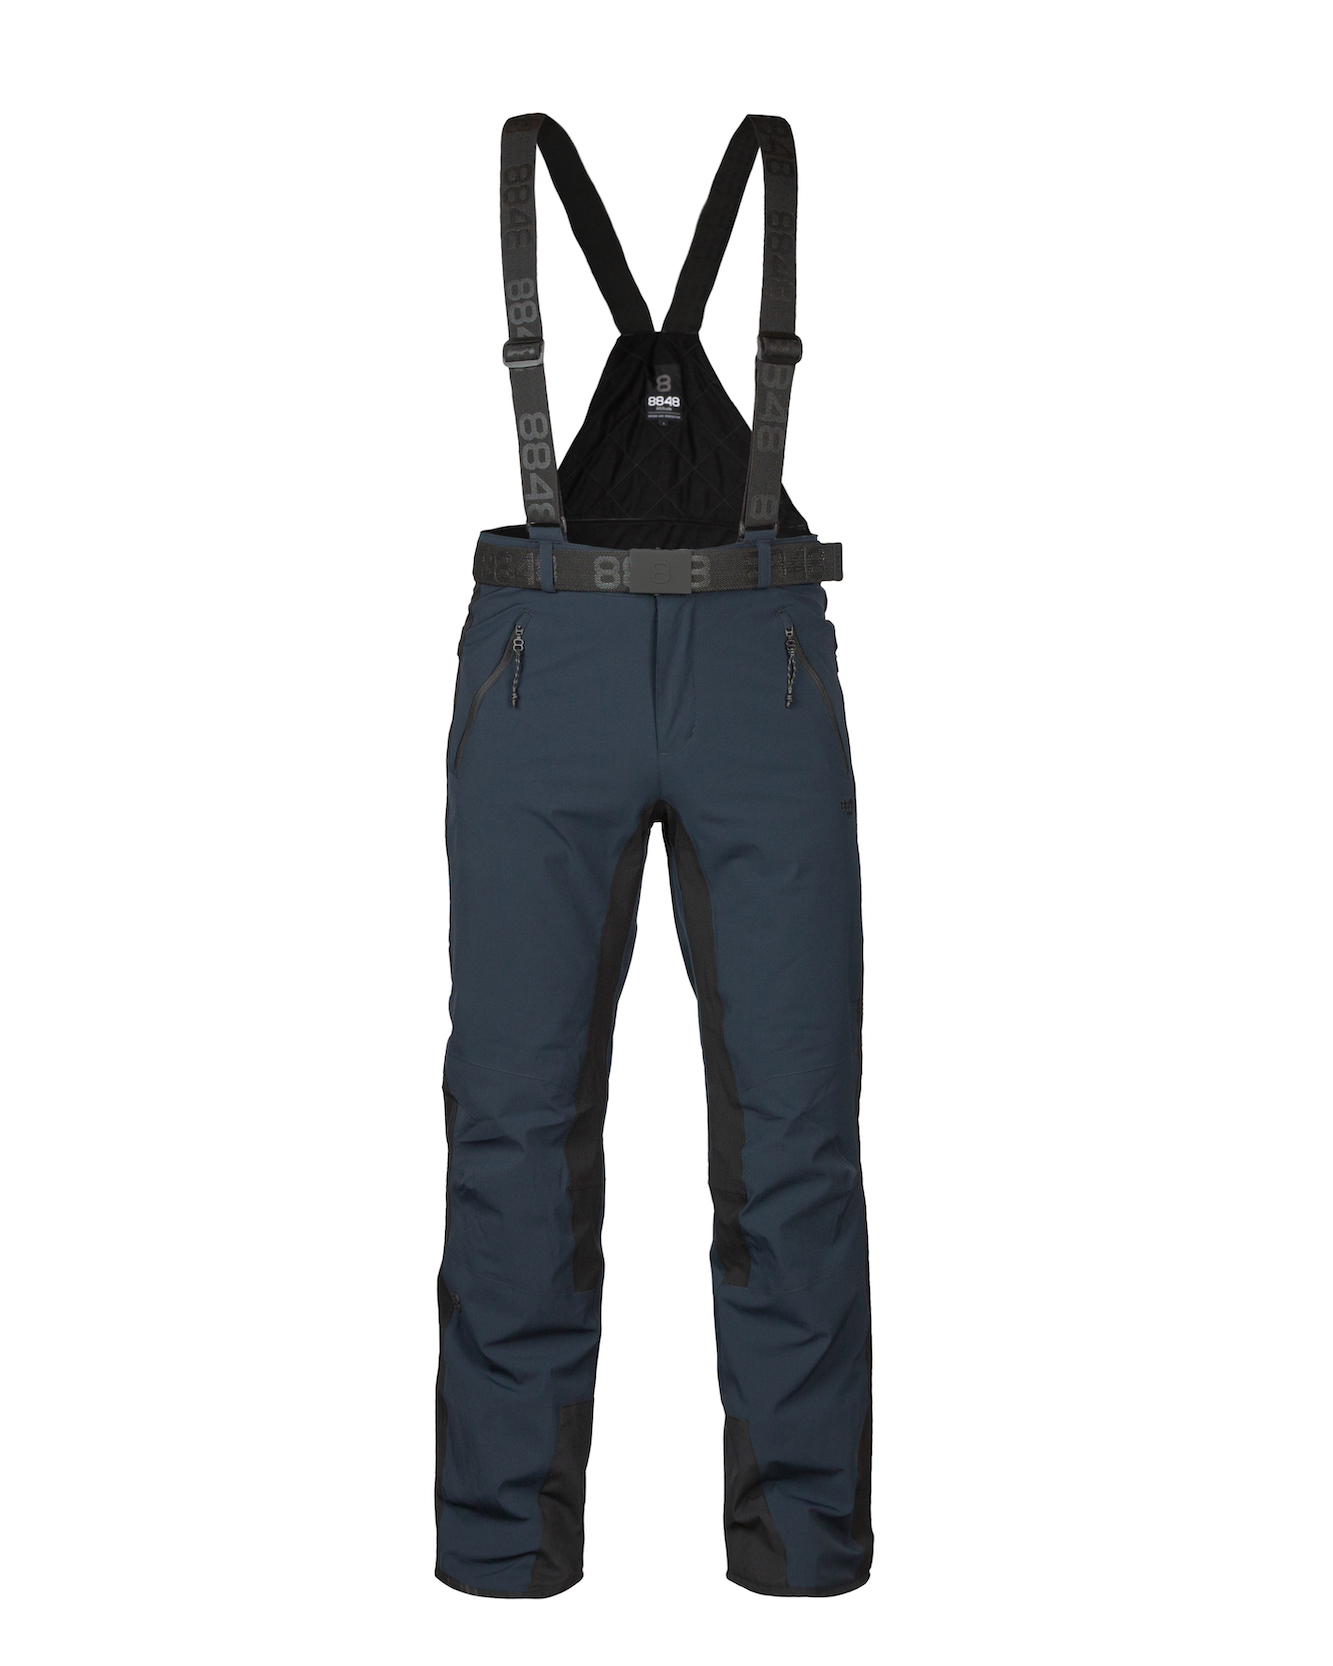 8848 Altitude Rothorn 2_0 Pants 2022